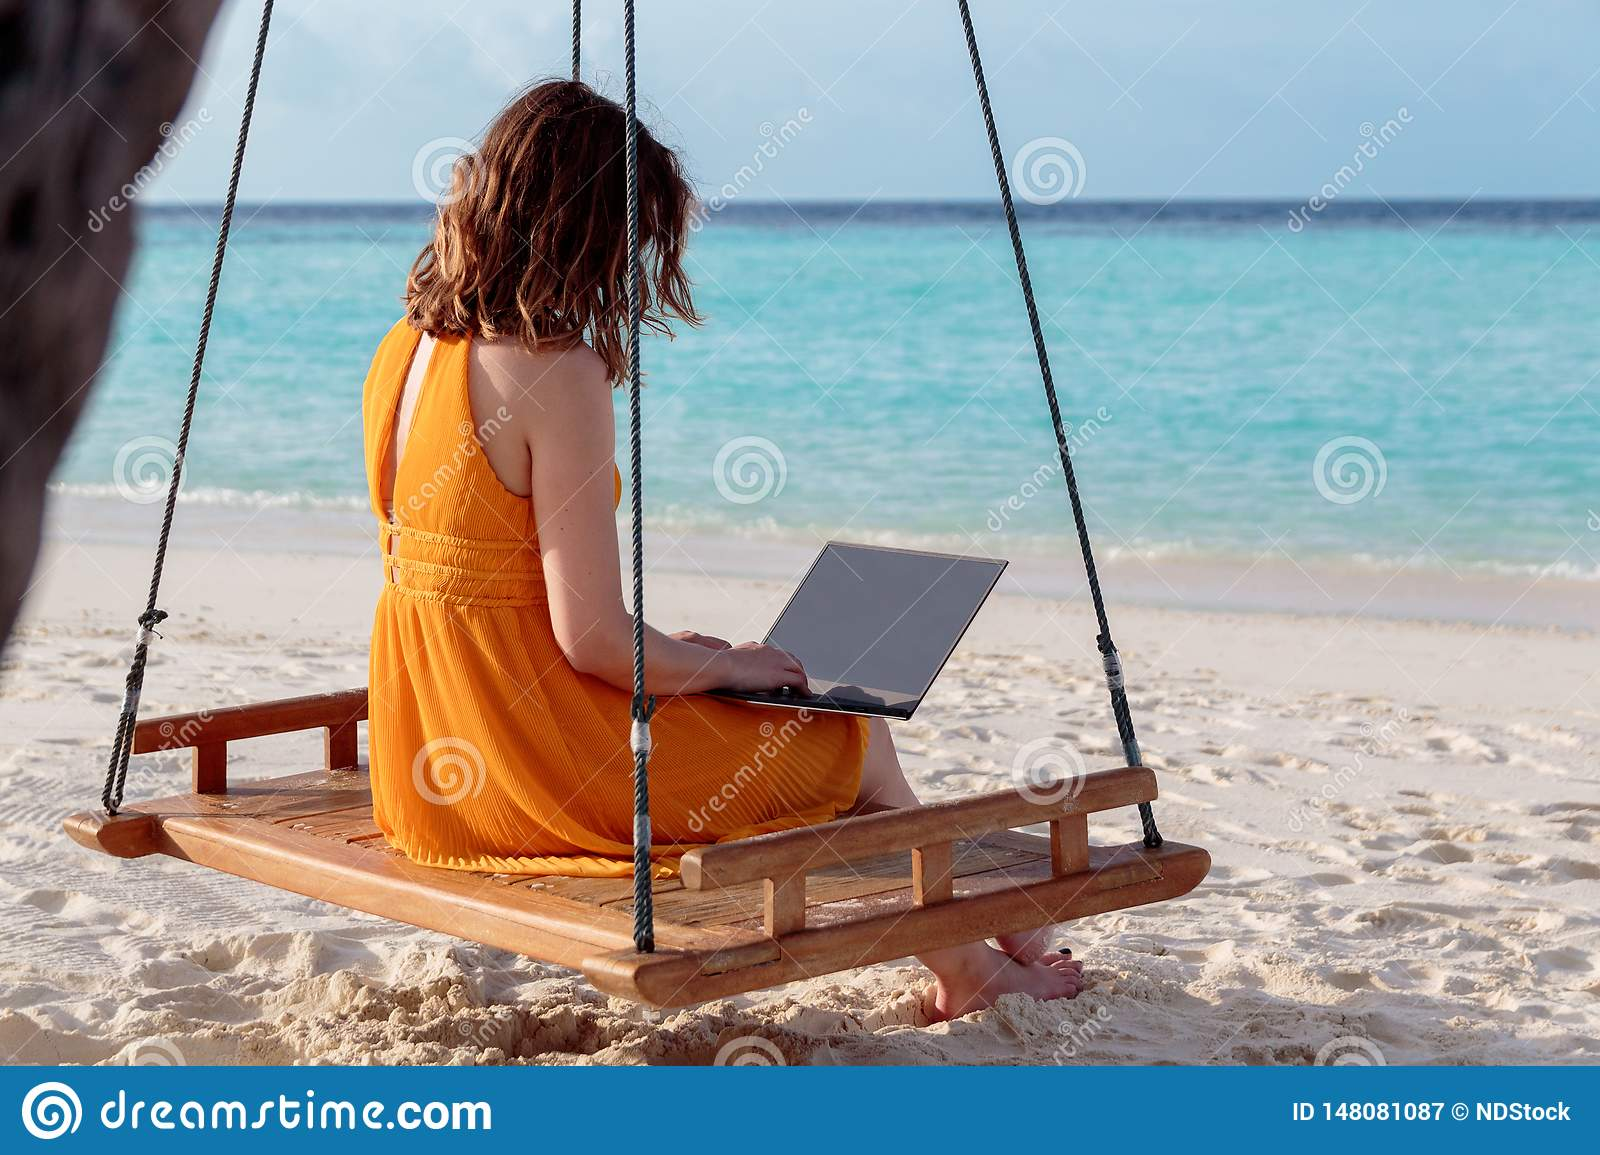 Young woman seated on a swing and working with his laptop. Clear blue tropical water as background